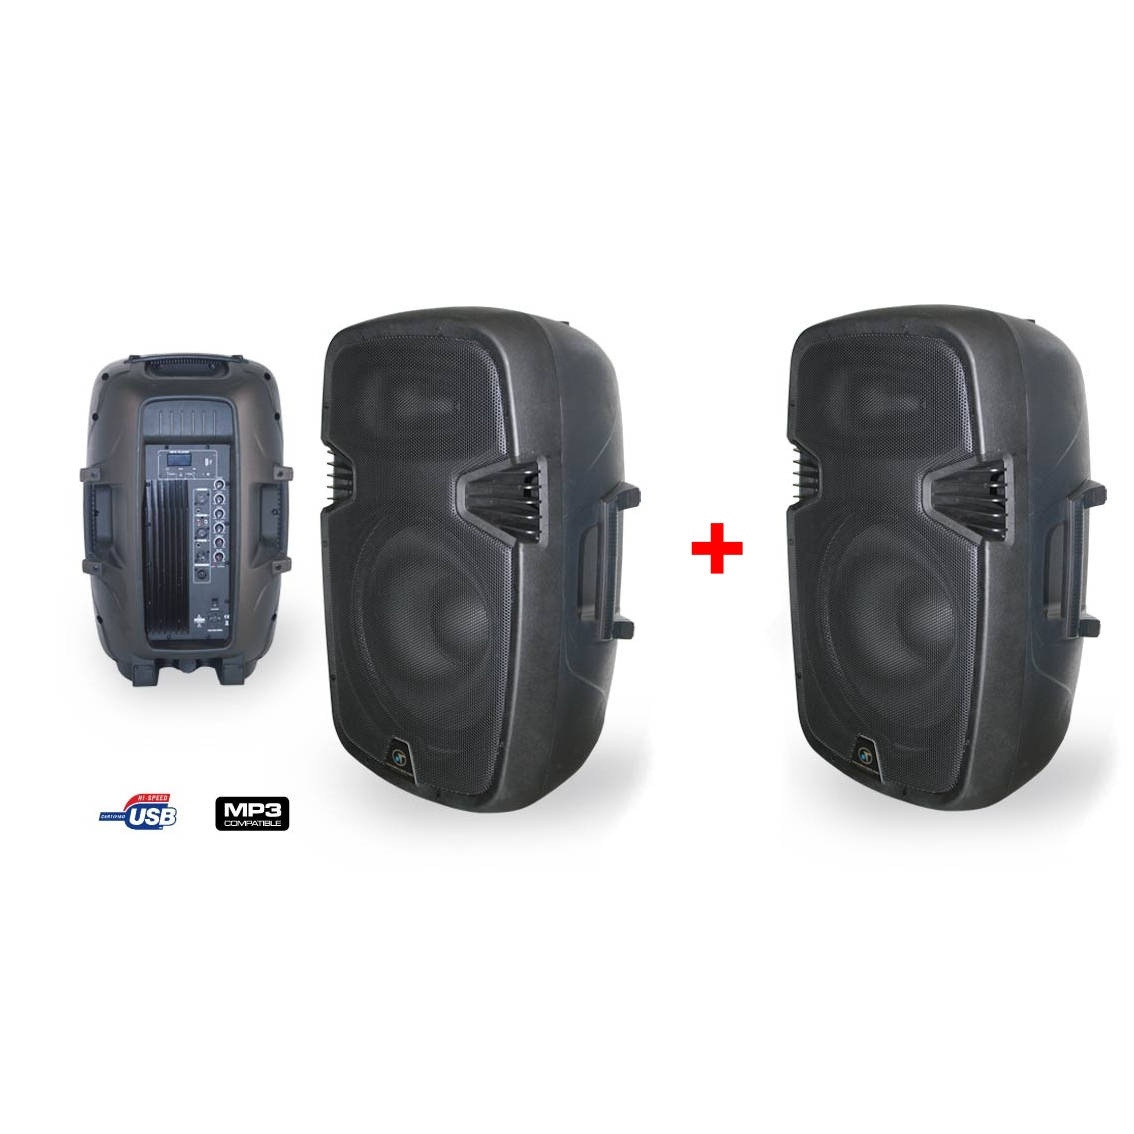 PACK ENCEINTE MOULEE AMPLIFIEE MP3 38CM + ENCEINTE MOULEE PASSIVE 38CM